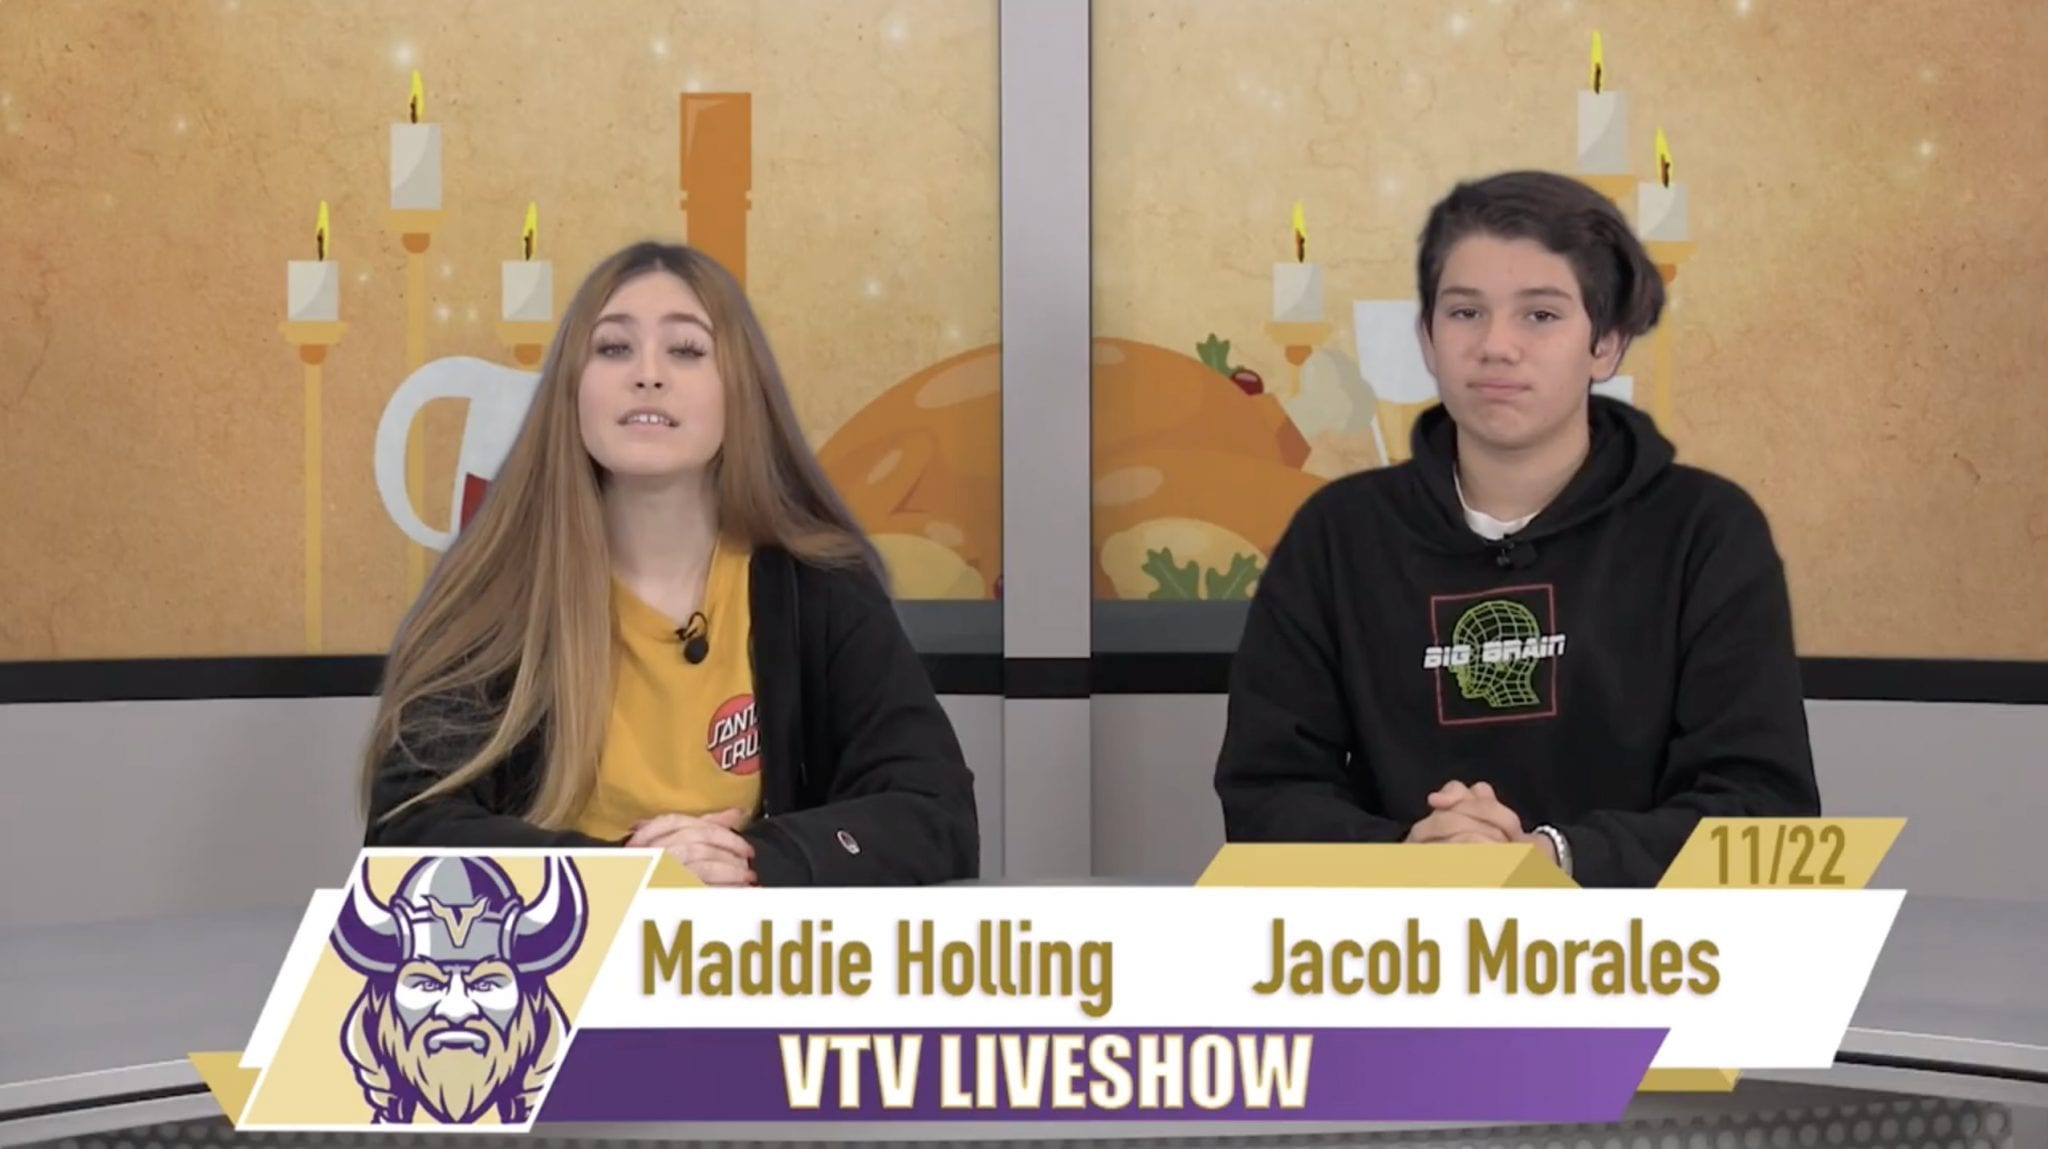 Scvtv Com Valencia High School Valencia Tv Live 11 22 19